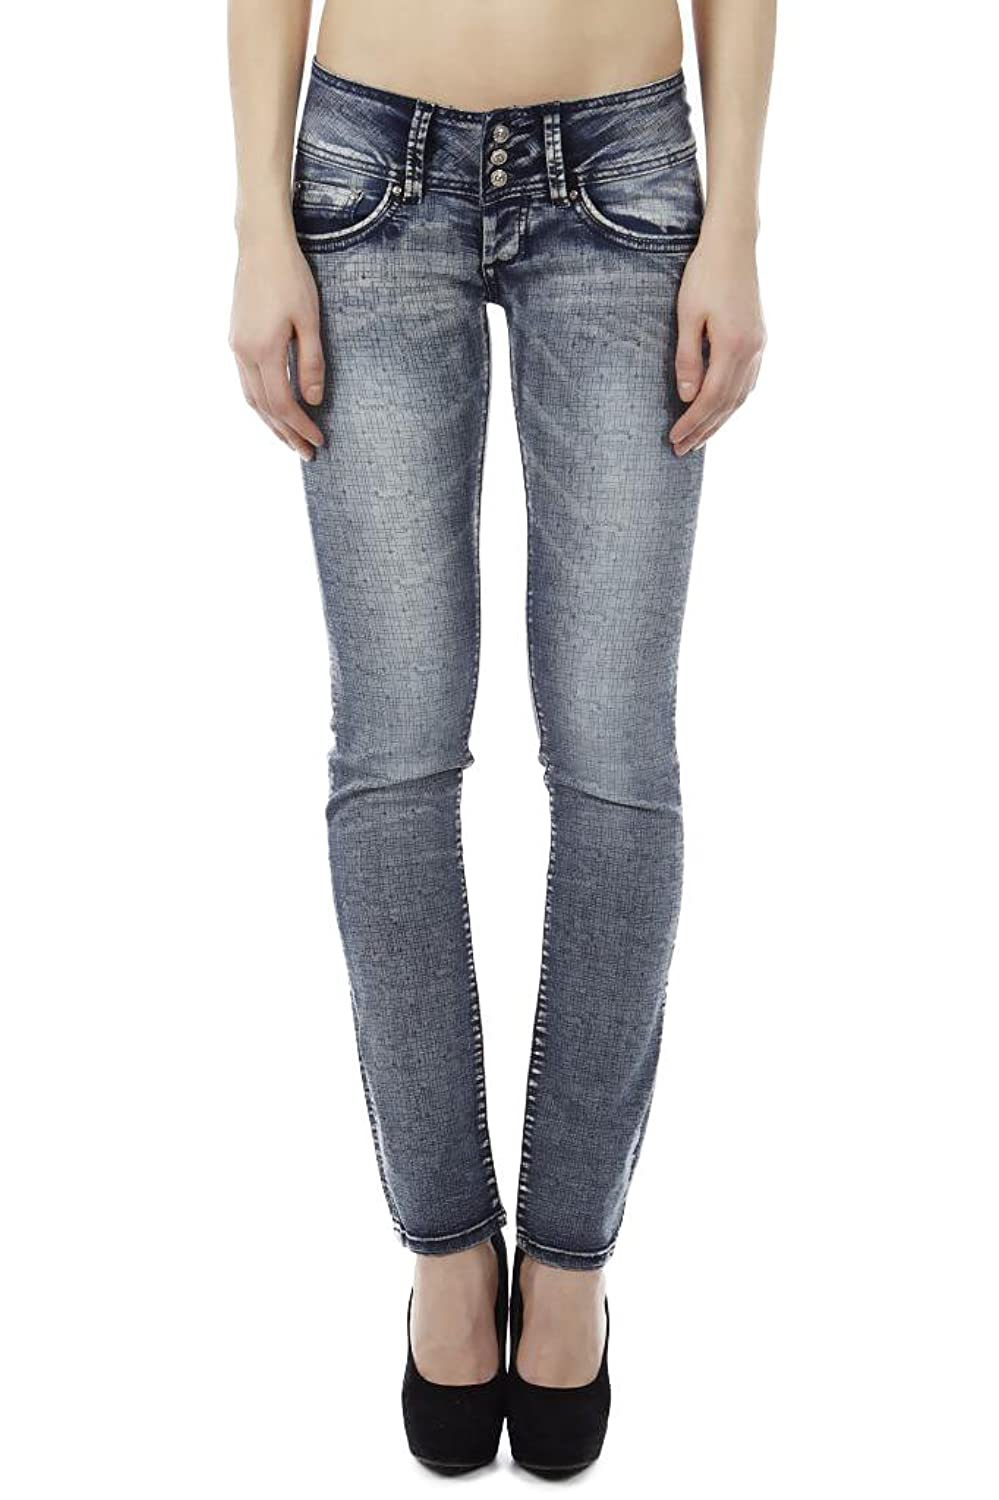 Dinamit Juniors Triple-buttoned, Mid-rise, Vintage Distressed Skinny Fit Jeans